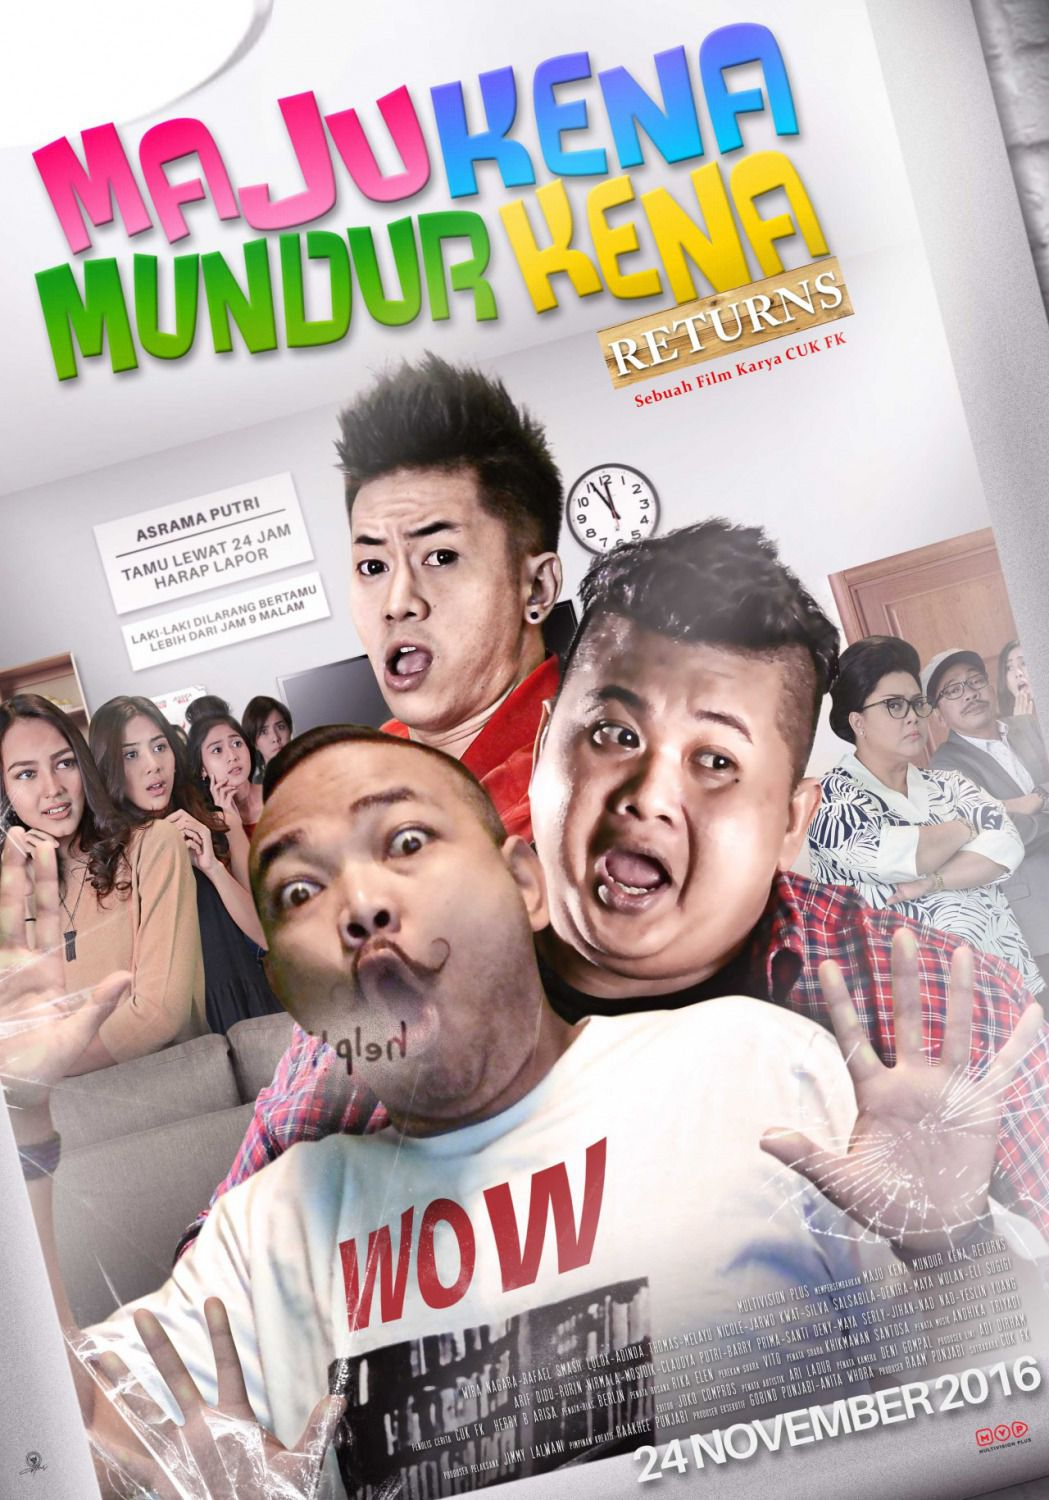 Maju Kena Mundur Kena Returns - comedy film poster